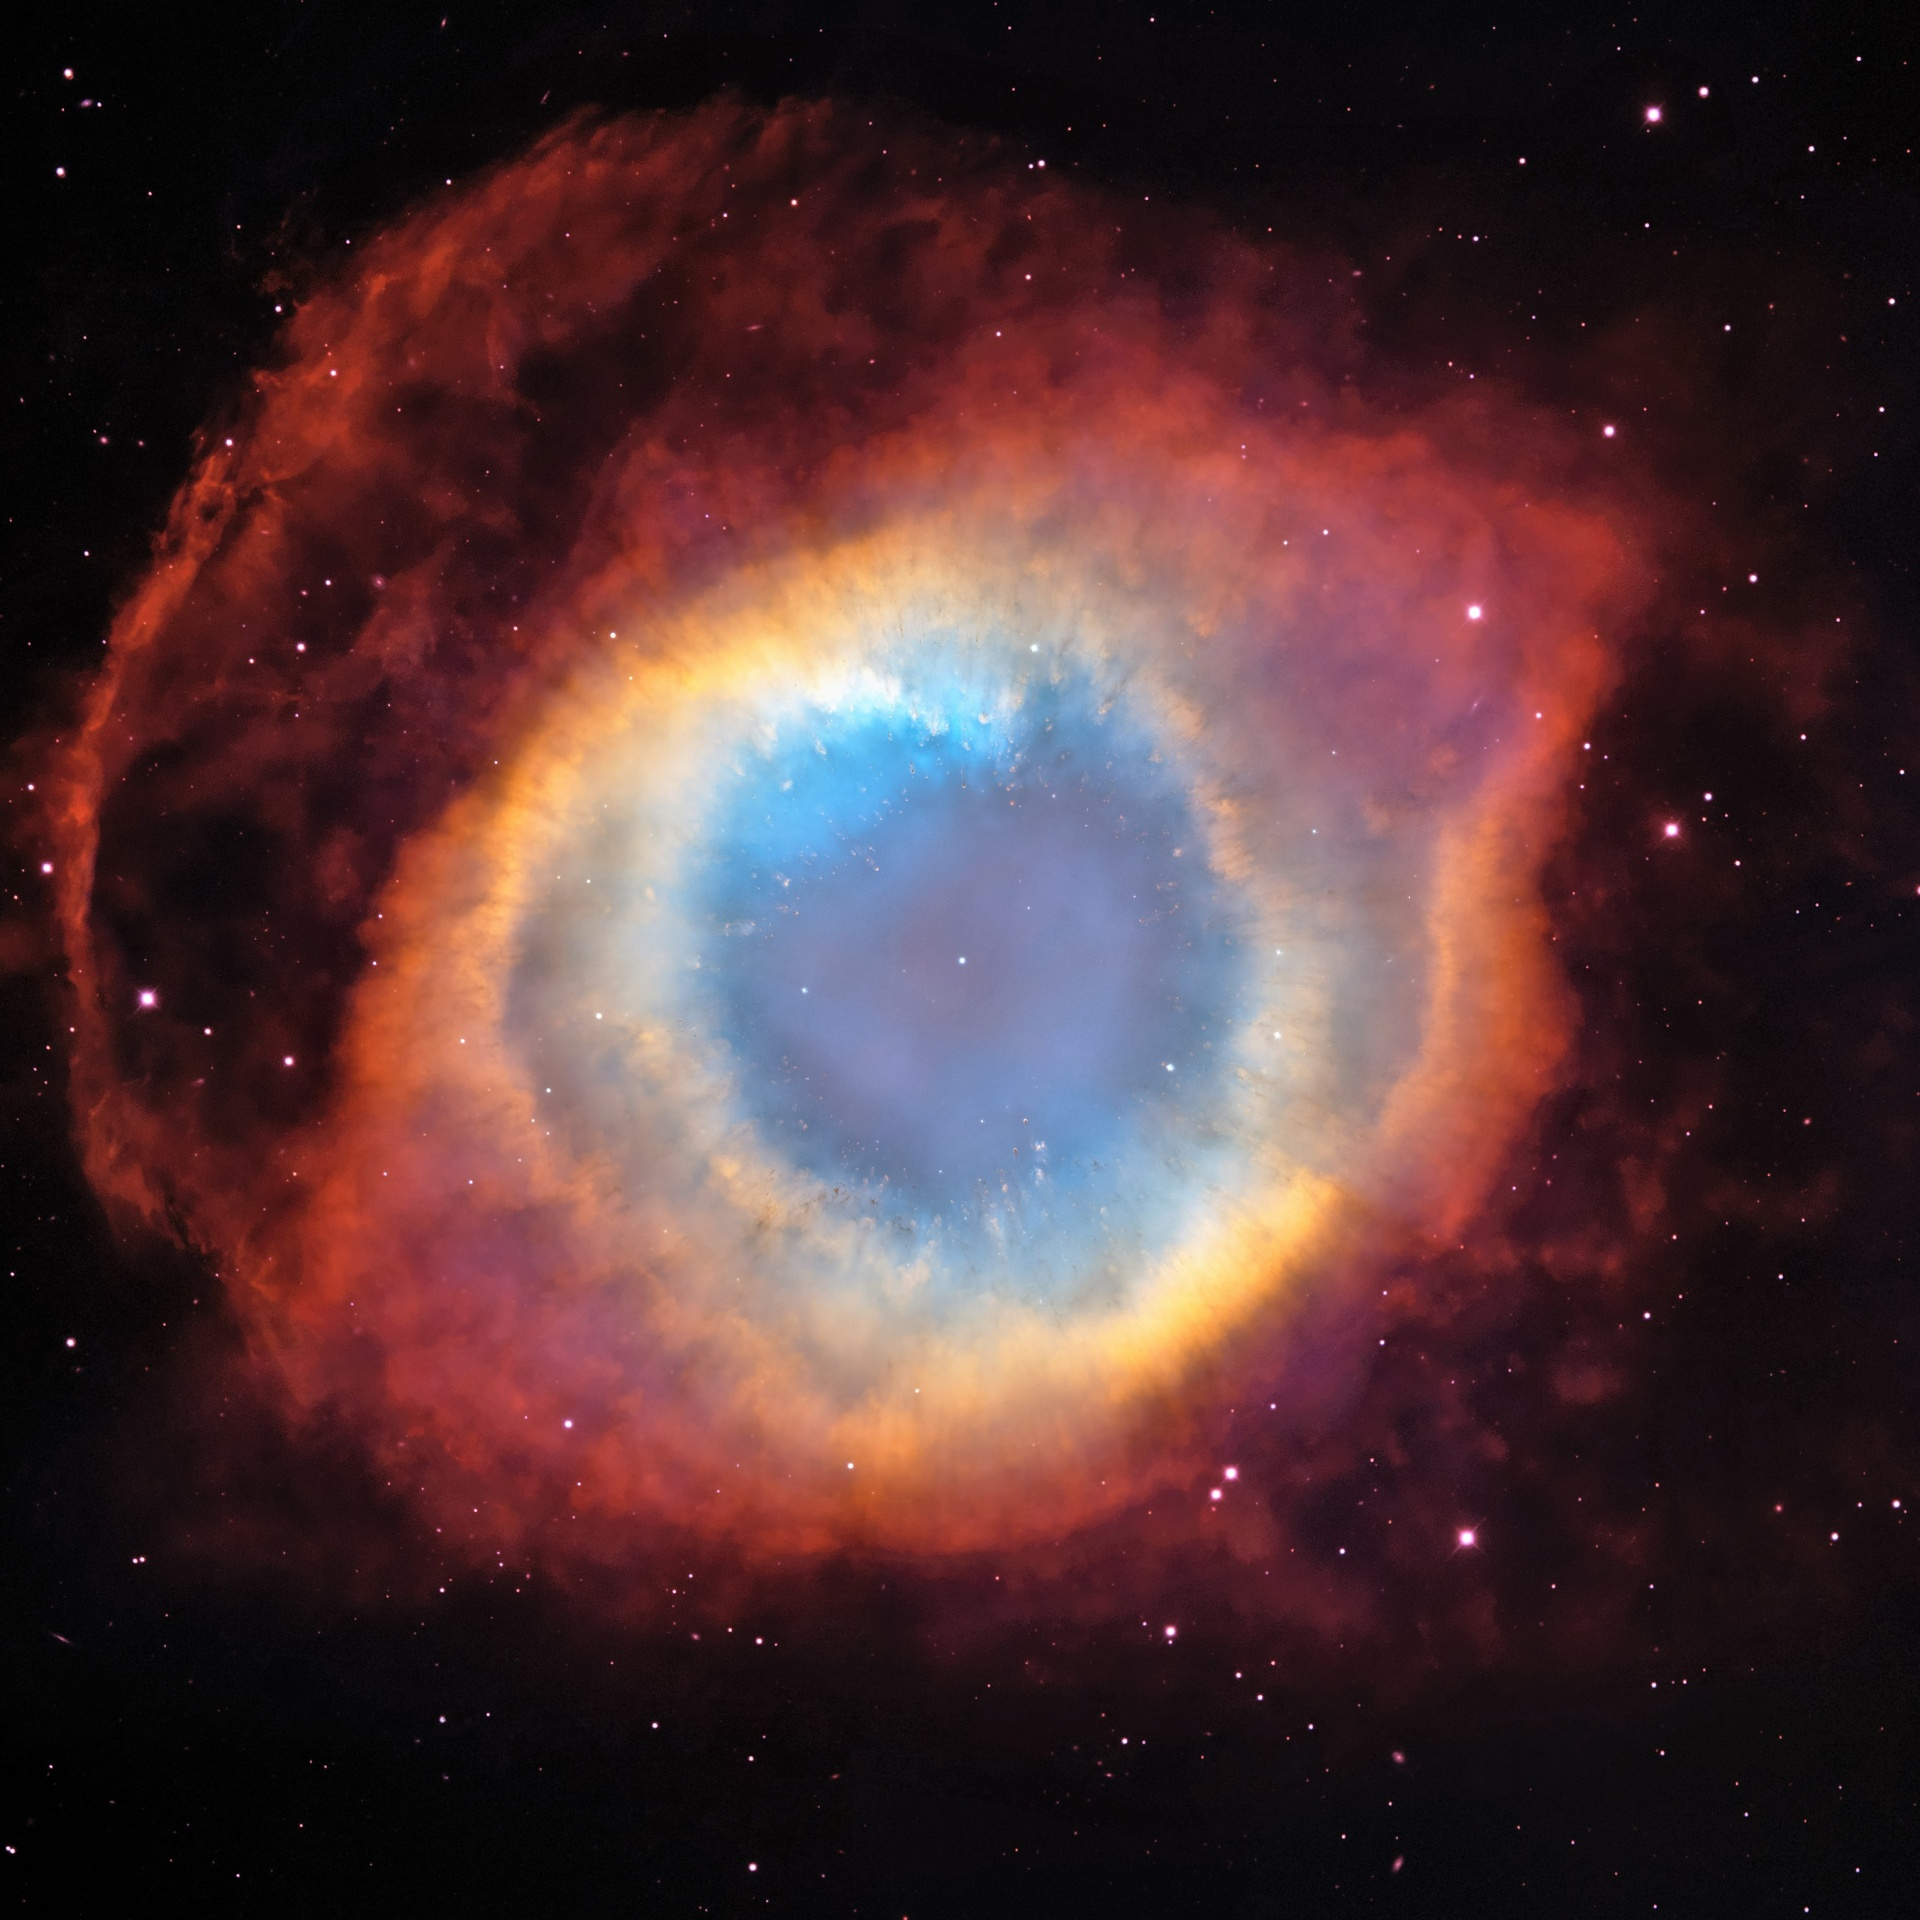 """The Eye of God"" taken by the Hubble Telescope; public domain"